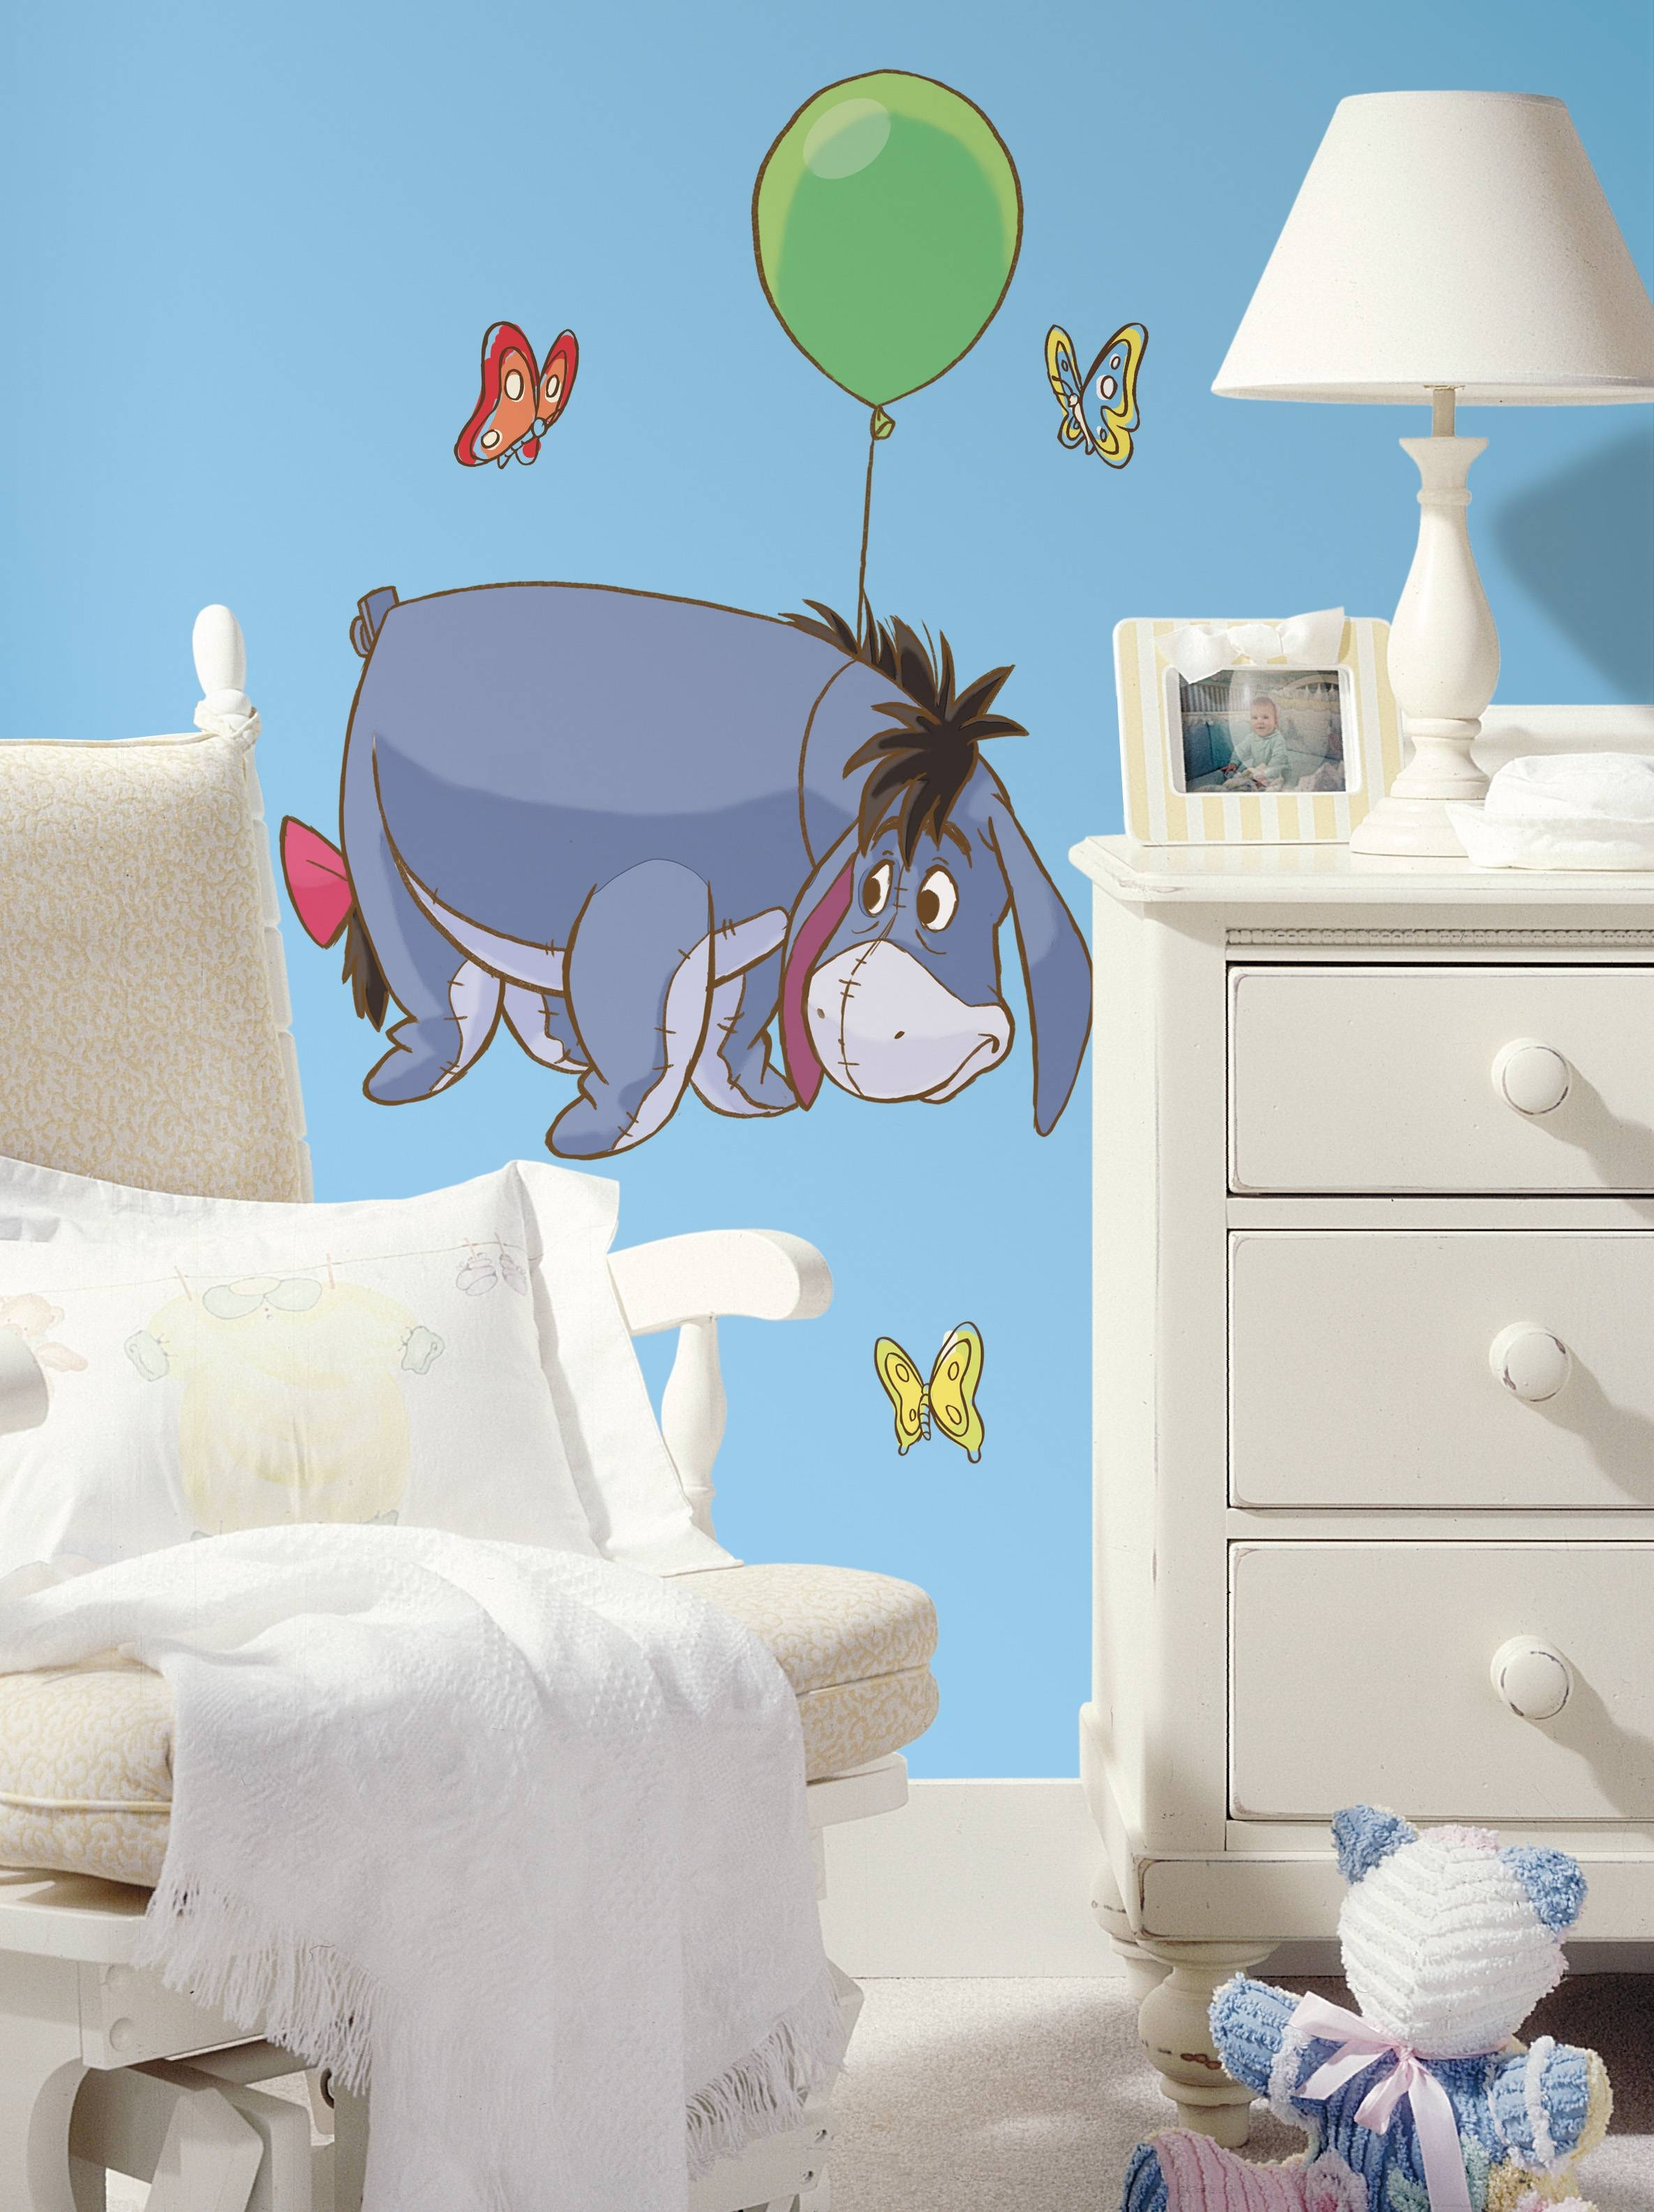 Decorating A Nursery With Winnie The Pooh Regarding Recent Winnie The Pooh Wall Decor (View 5 of 20)